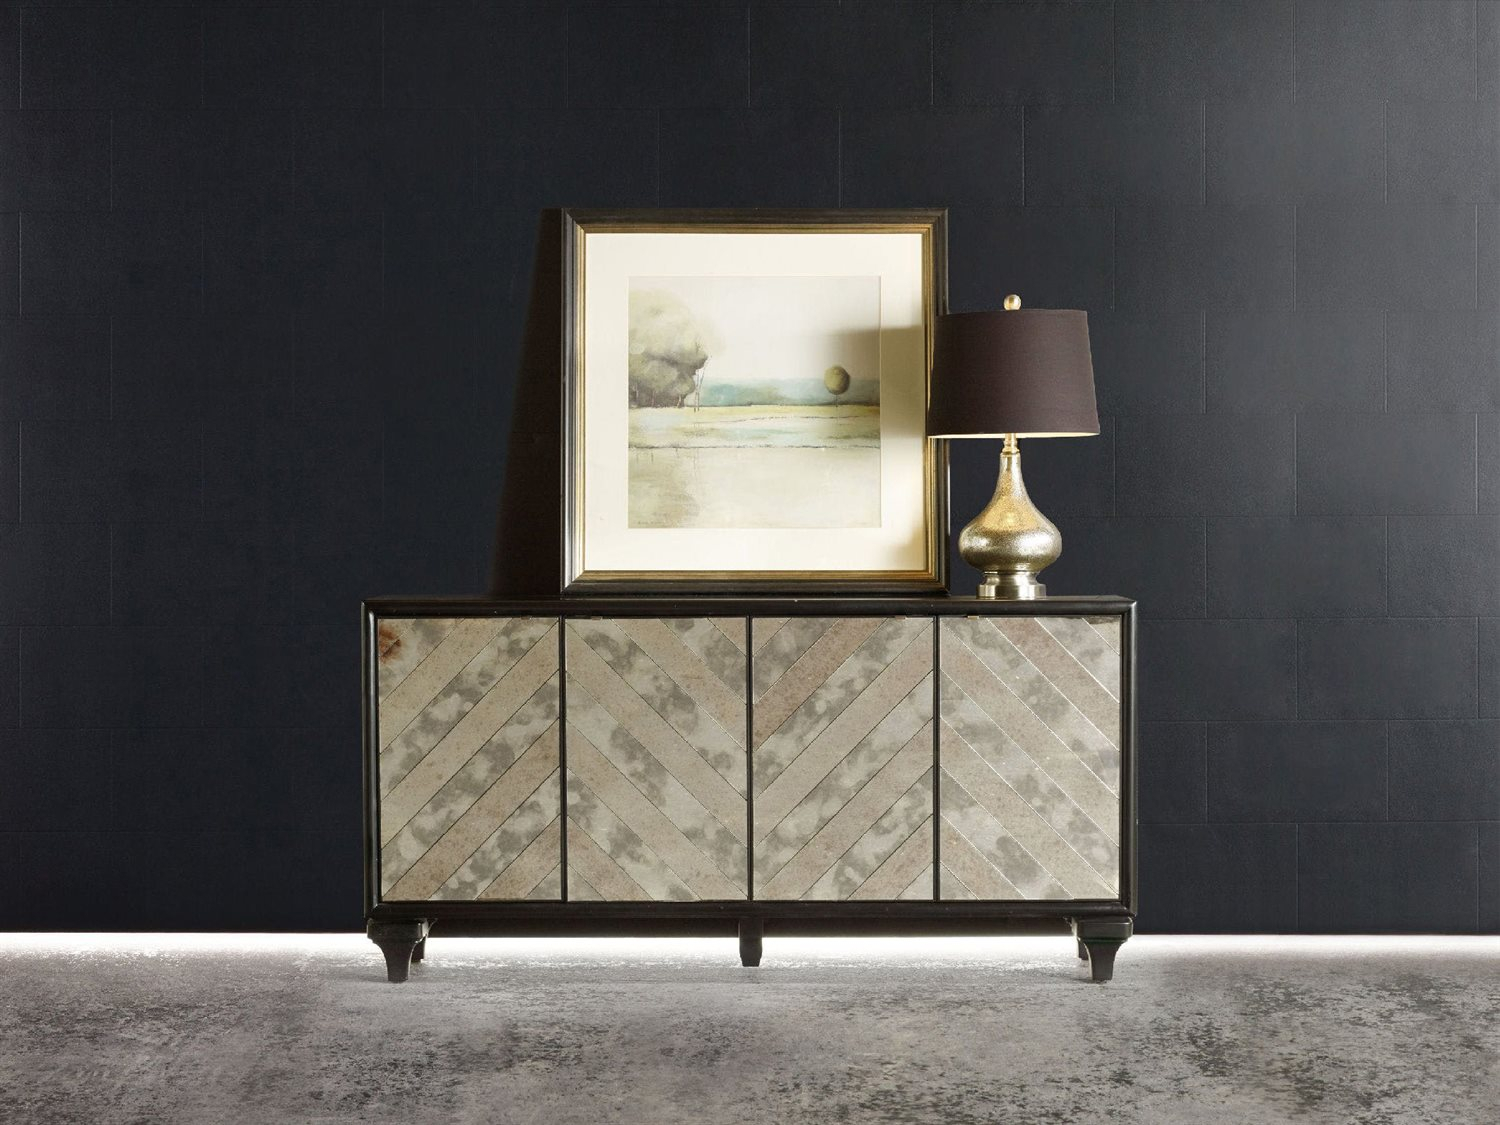 Hooker Furniture Melange Black 68''l X 18''w Rectangular Mirrored Angle Console Buffet Intended For Most Current Melange Brockton Sideboards (View 15 of 20)